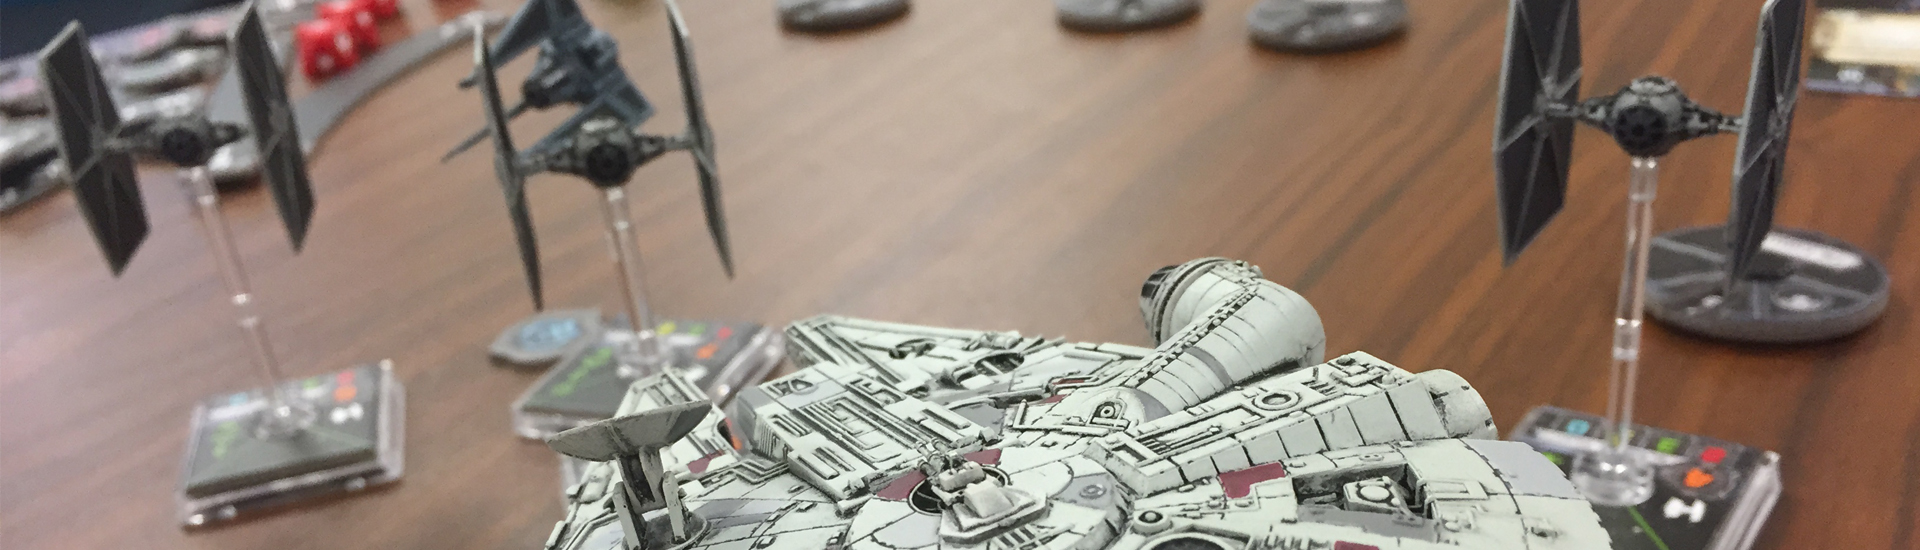 Star Wars X-Wing Buying Guide